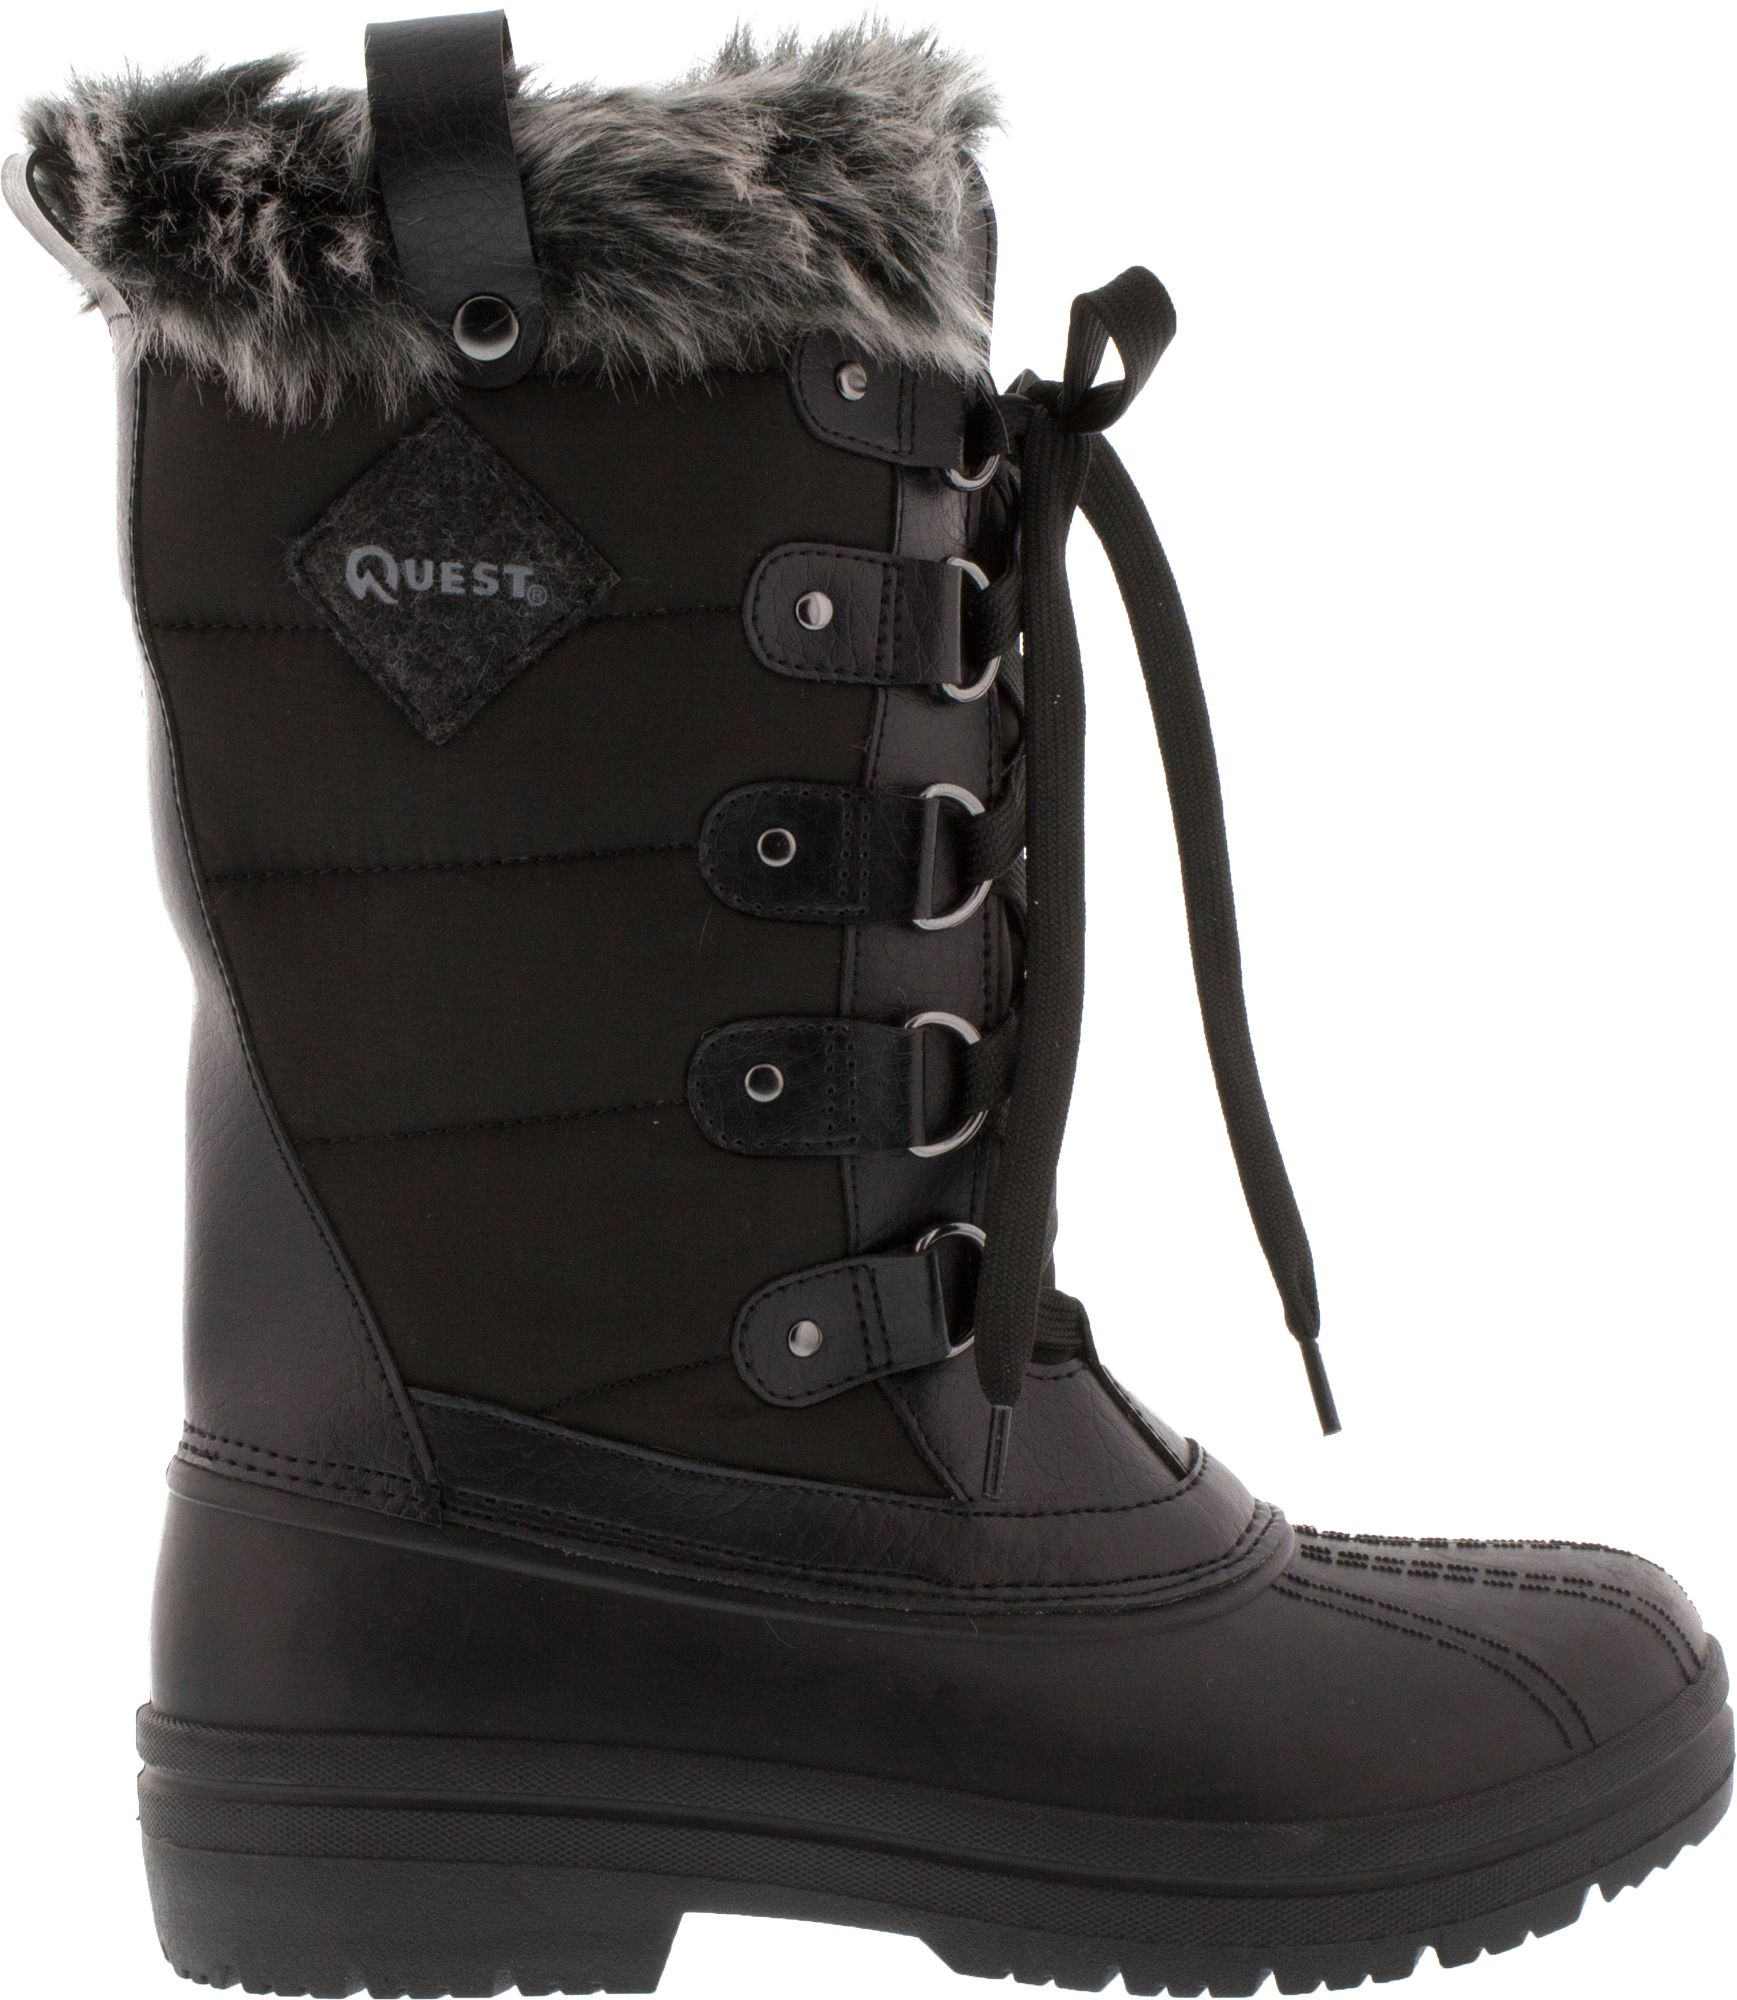 Discount Supply Get Authentic Winter boots - black Discount Prices Sale Top Quality Knock Off PaZ6vHt